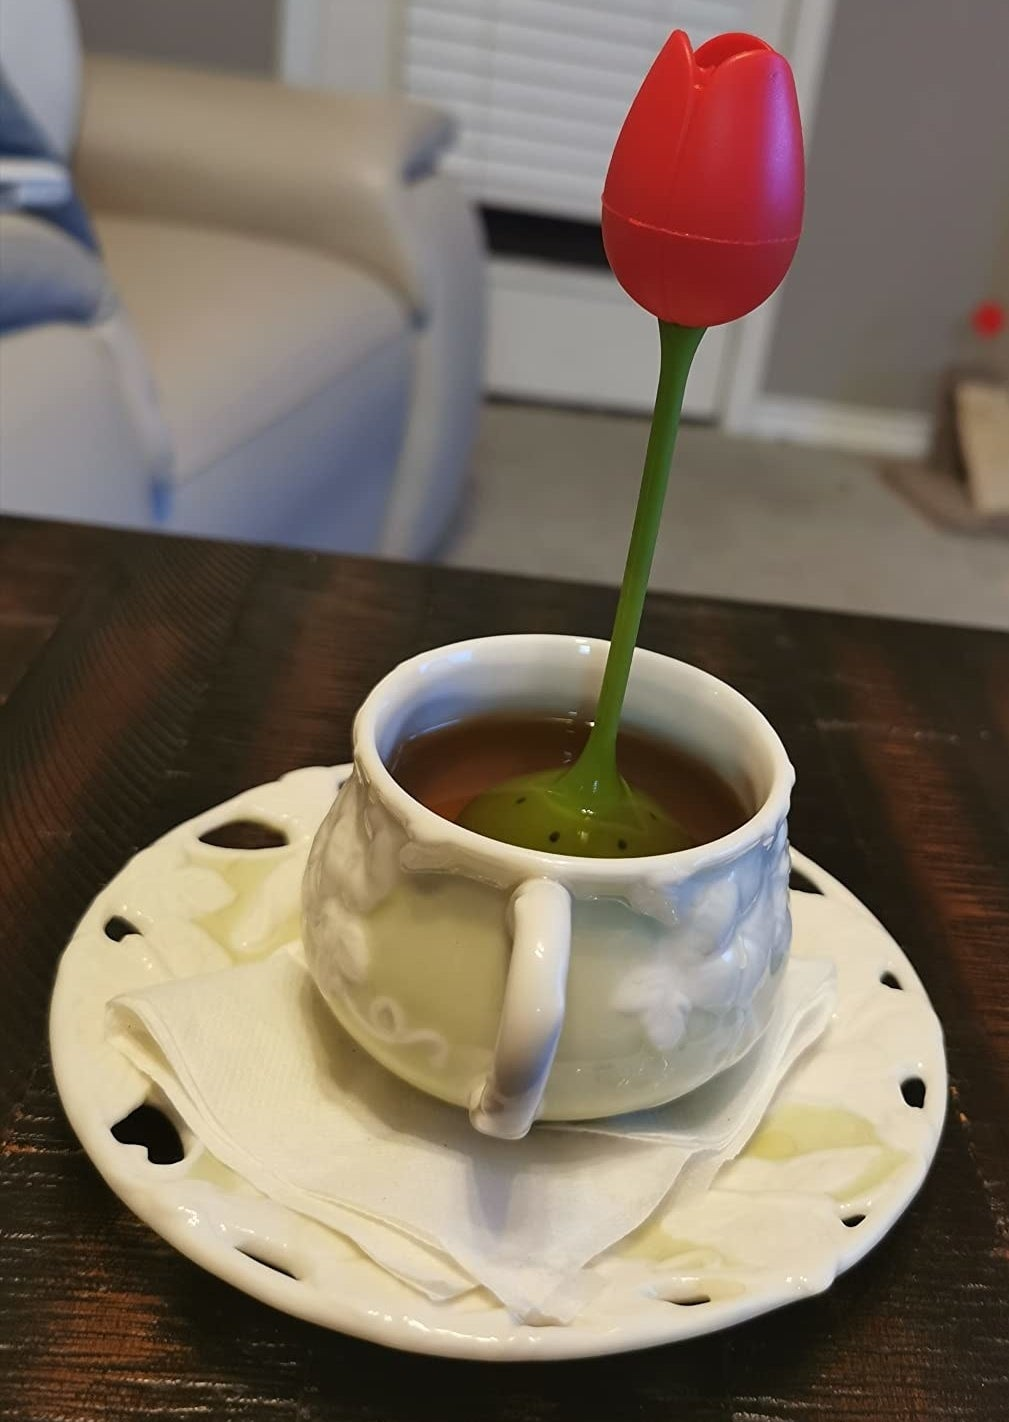 the tall tulip-shaped infuser, which has a red flower design and a tea-dispensing green base, in a reviewer's mug